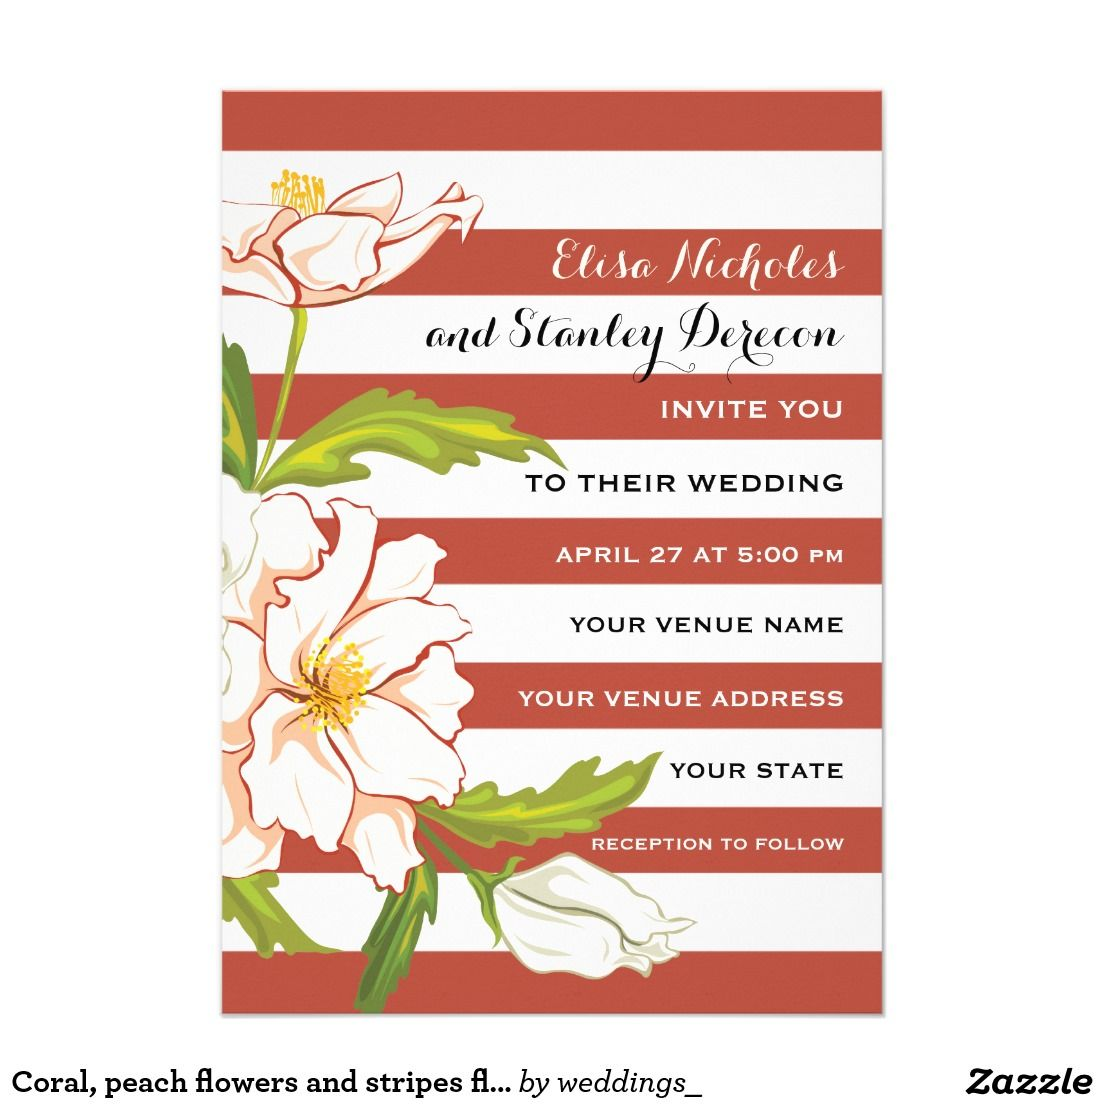 Coral, peach flowers and stripes floral wedding invitation ...